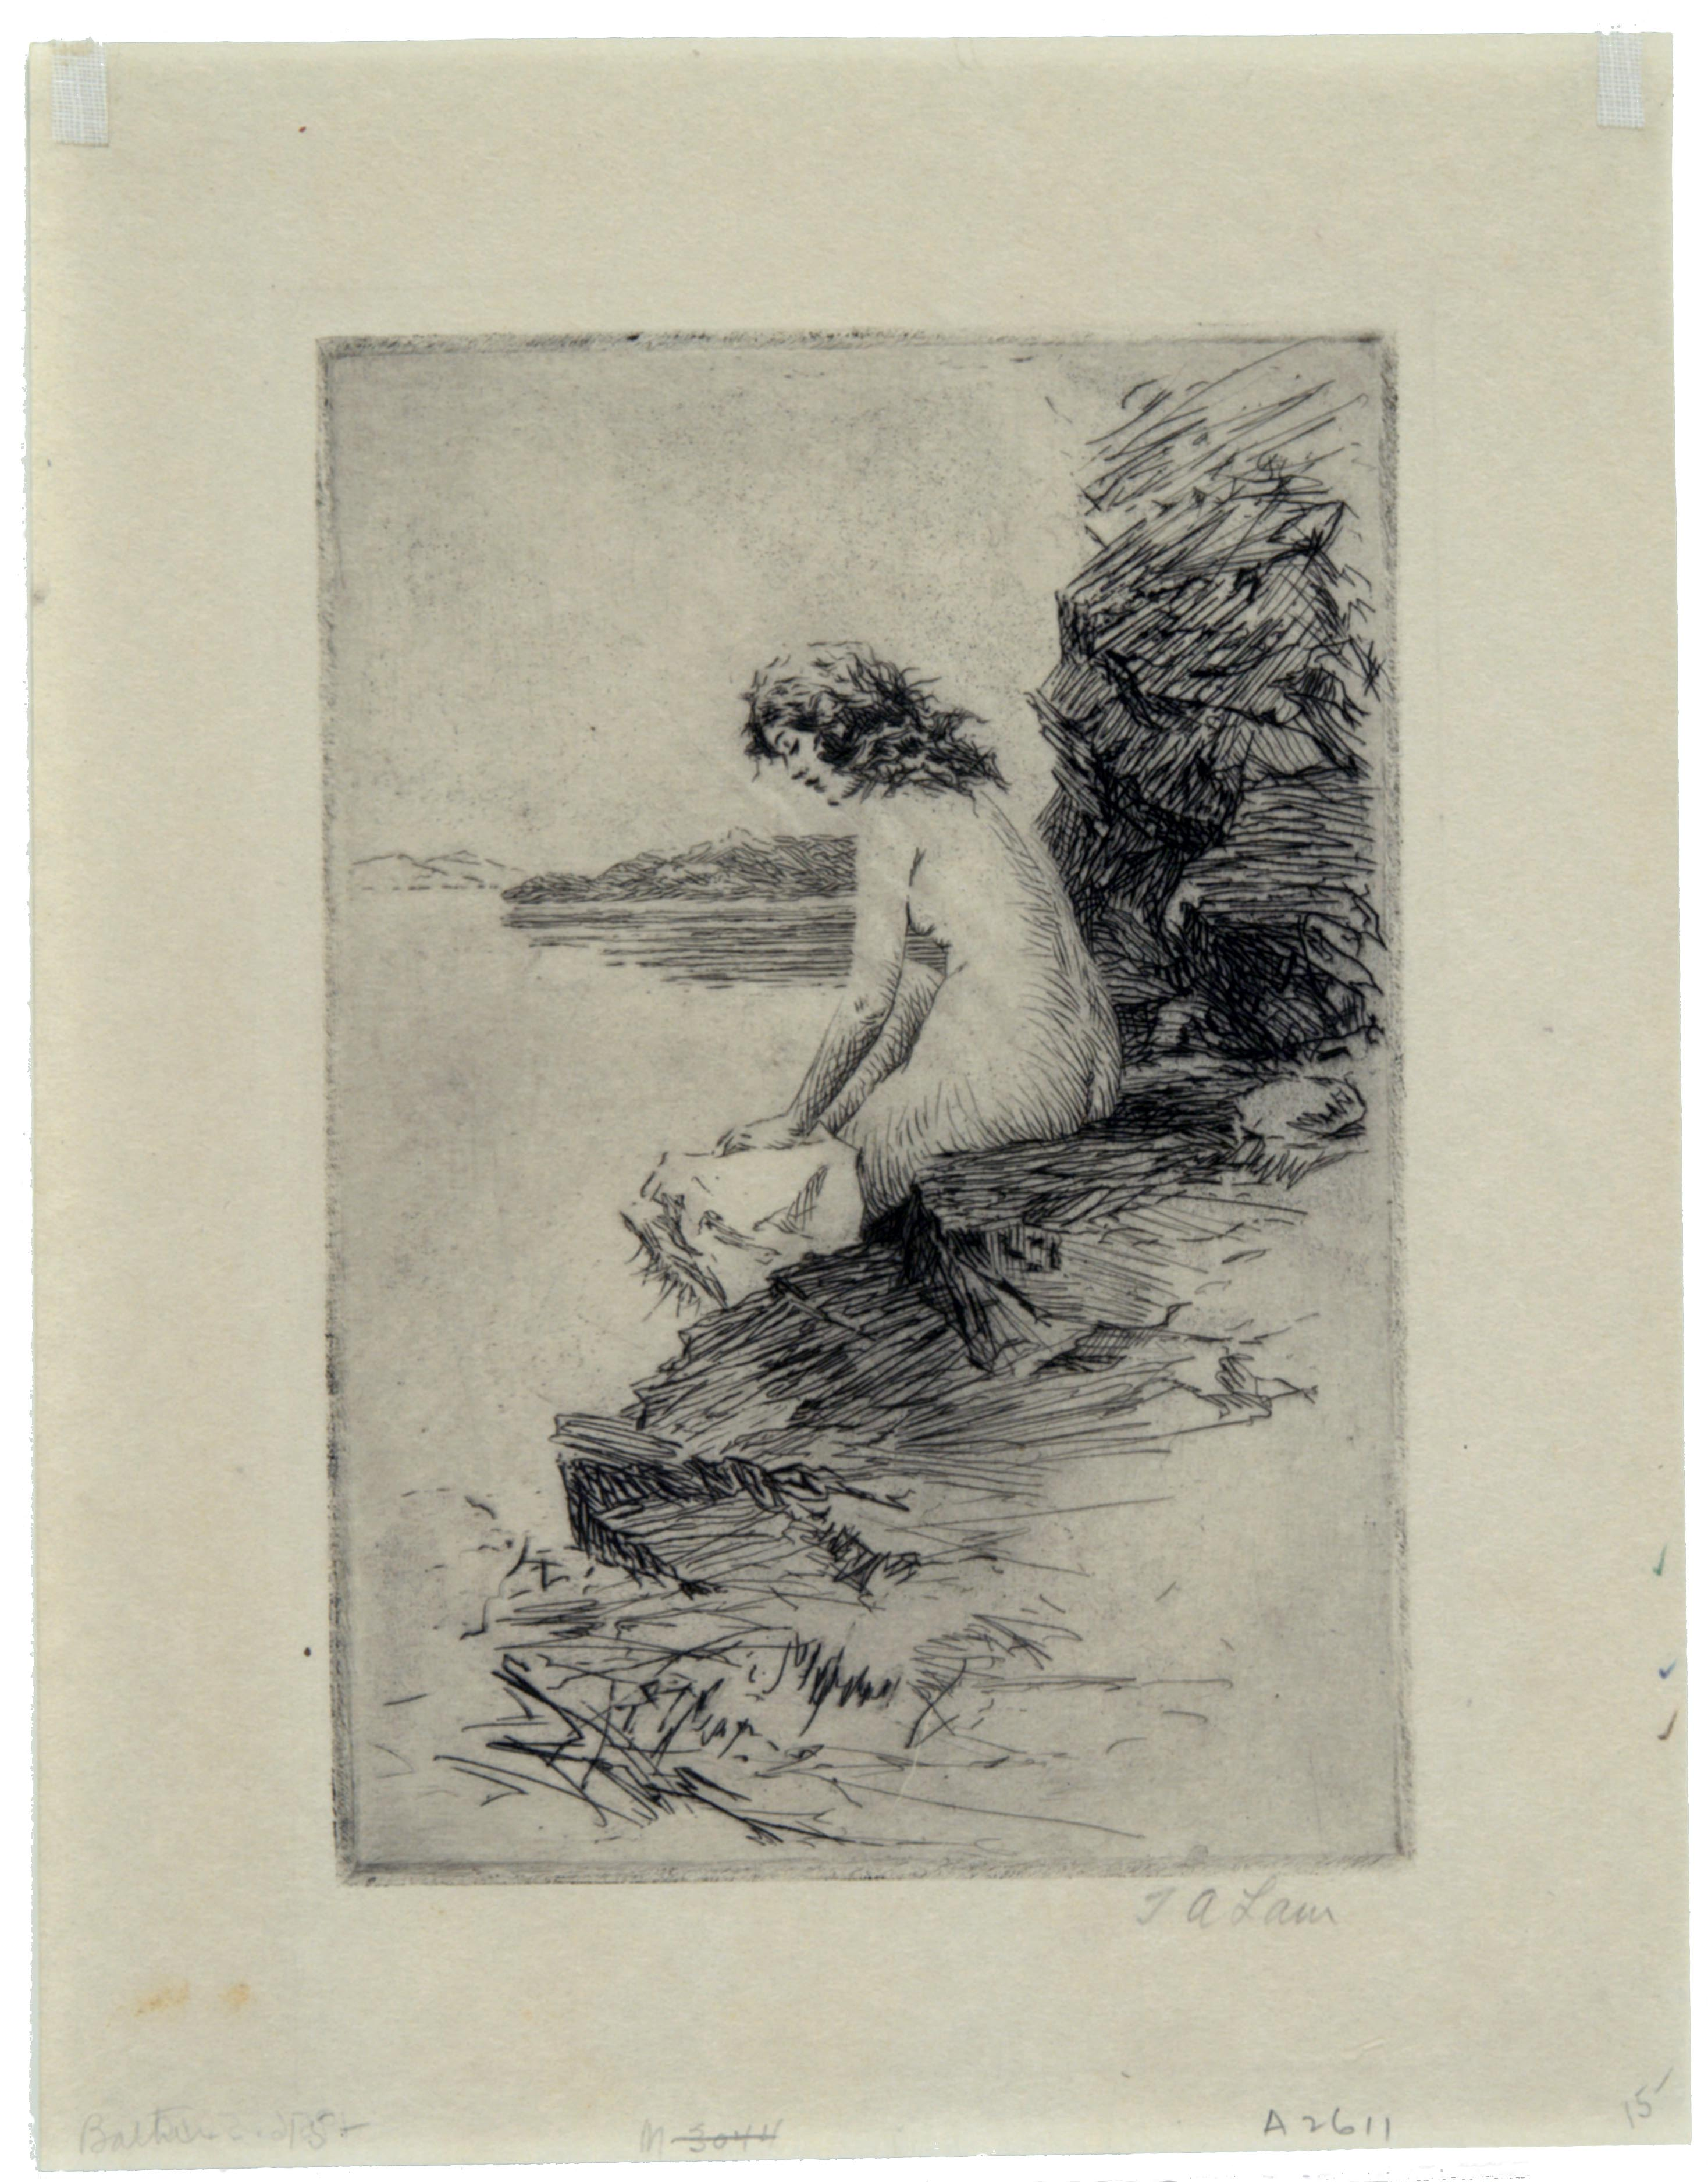 Andrew Law, Bathing Nude II, 1890